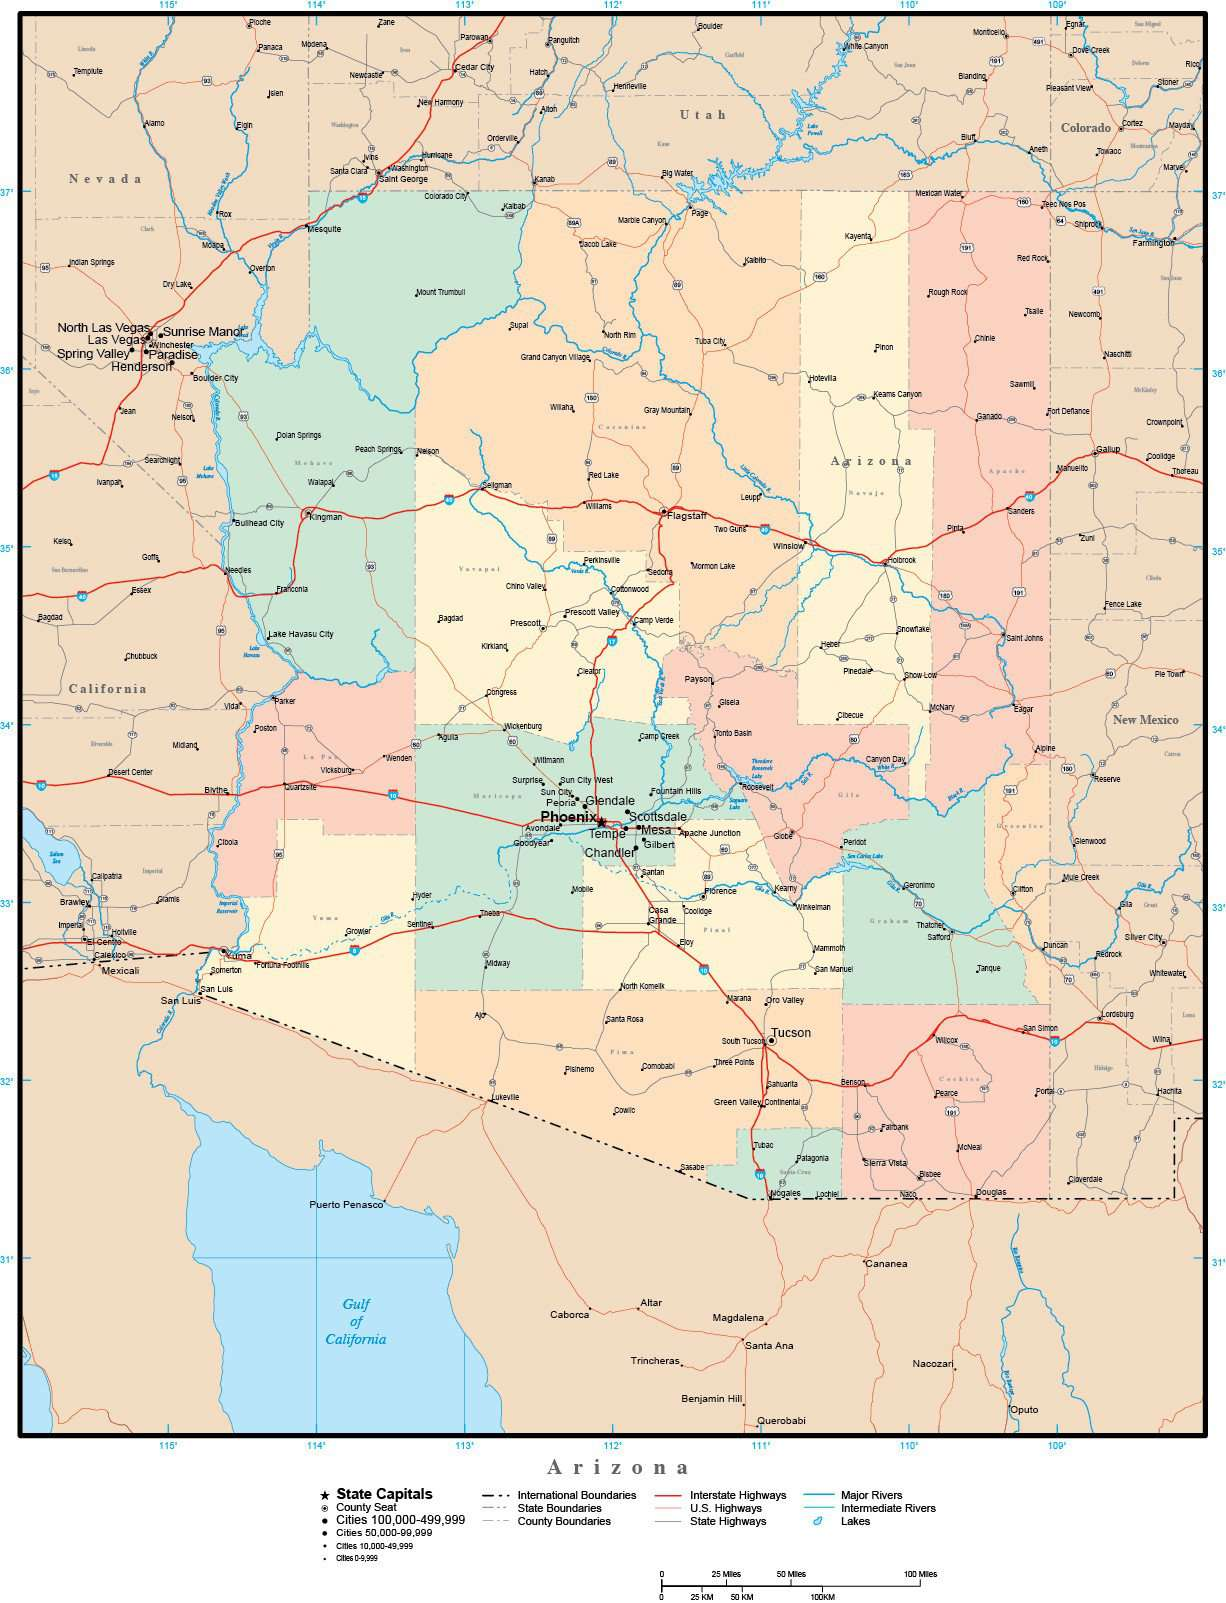 Map Of Arizona And Cities.Arizona Map With Counties Cities County Seats Major Roads Rivers And Lakes